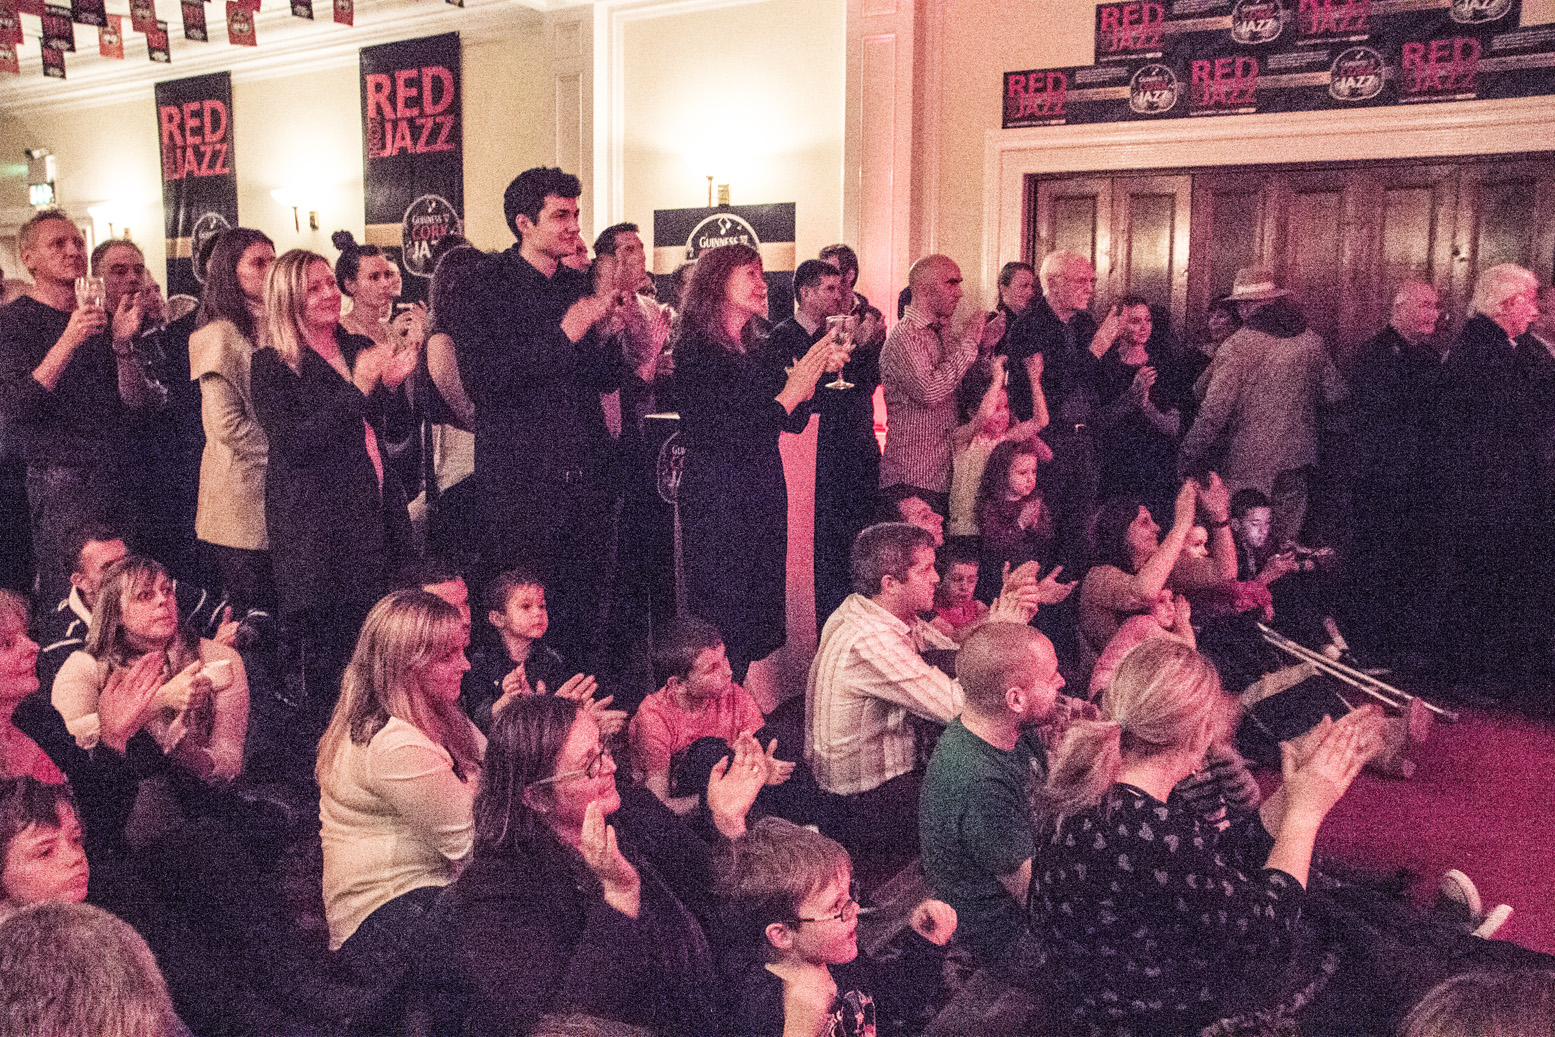 Cork jazz festival concert audience at the metropole hotel